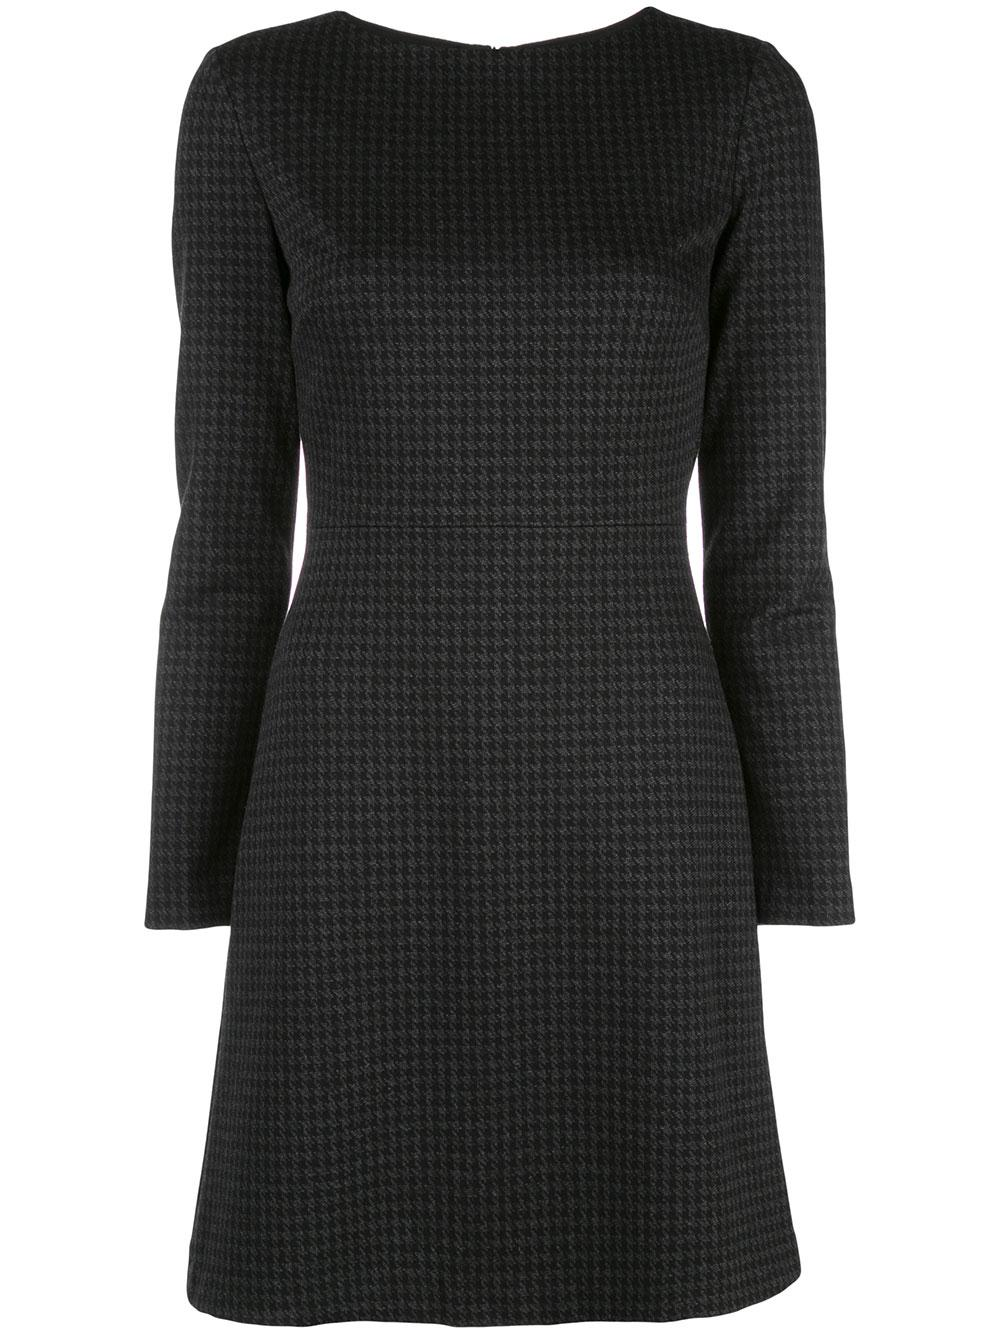 Kamilina Houndstooth Long Sleeve Dress Item # J0906611